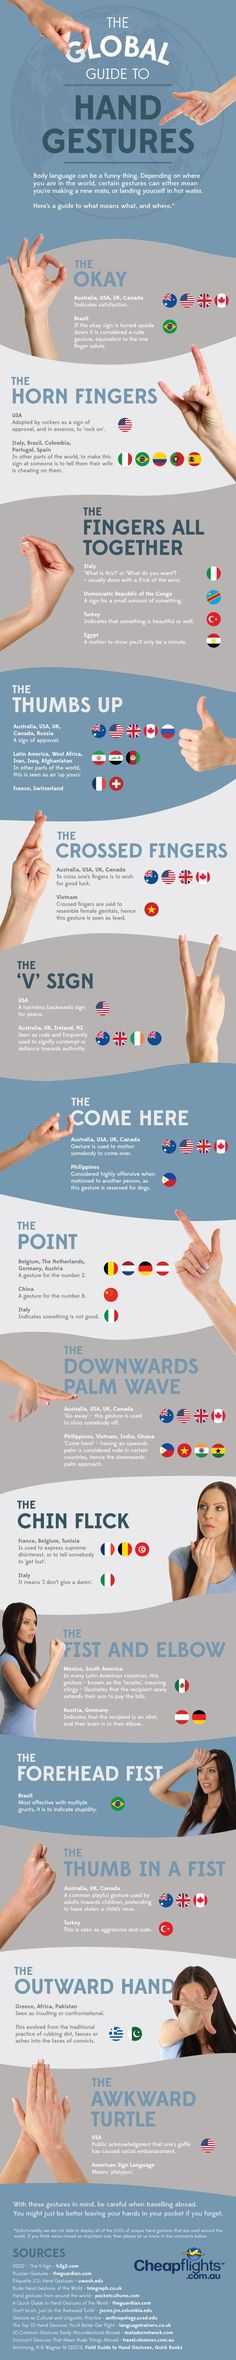 The Global Guide to Hand Gestures - A very interesting infographic! #culture